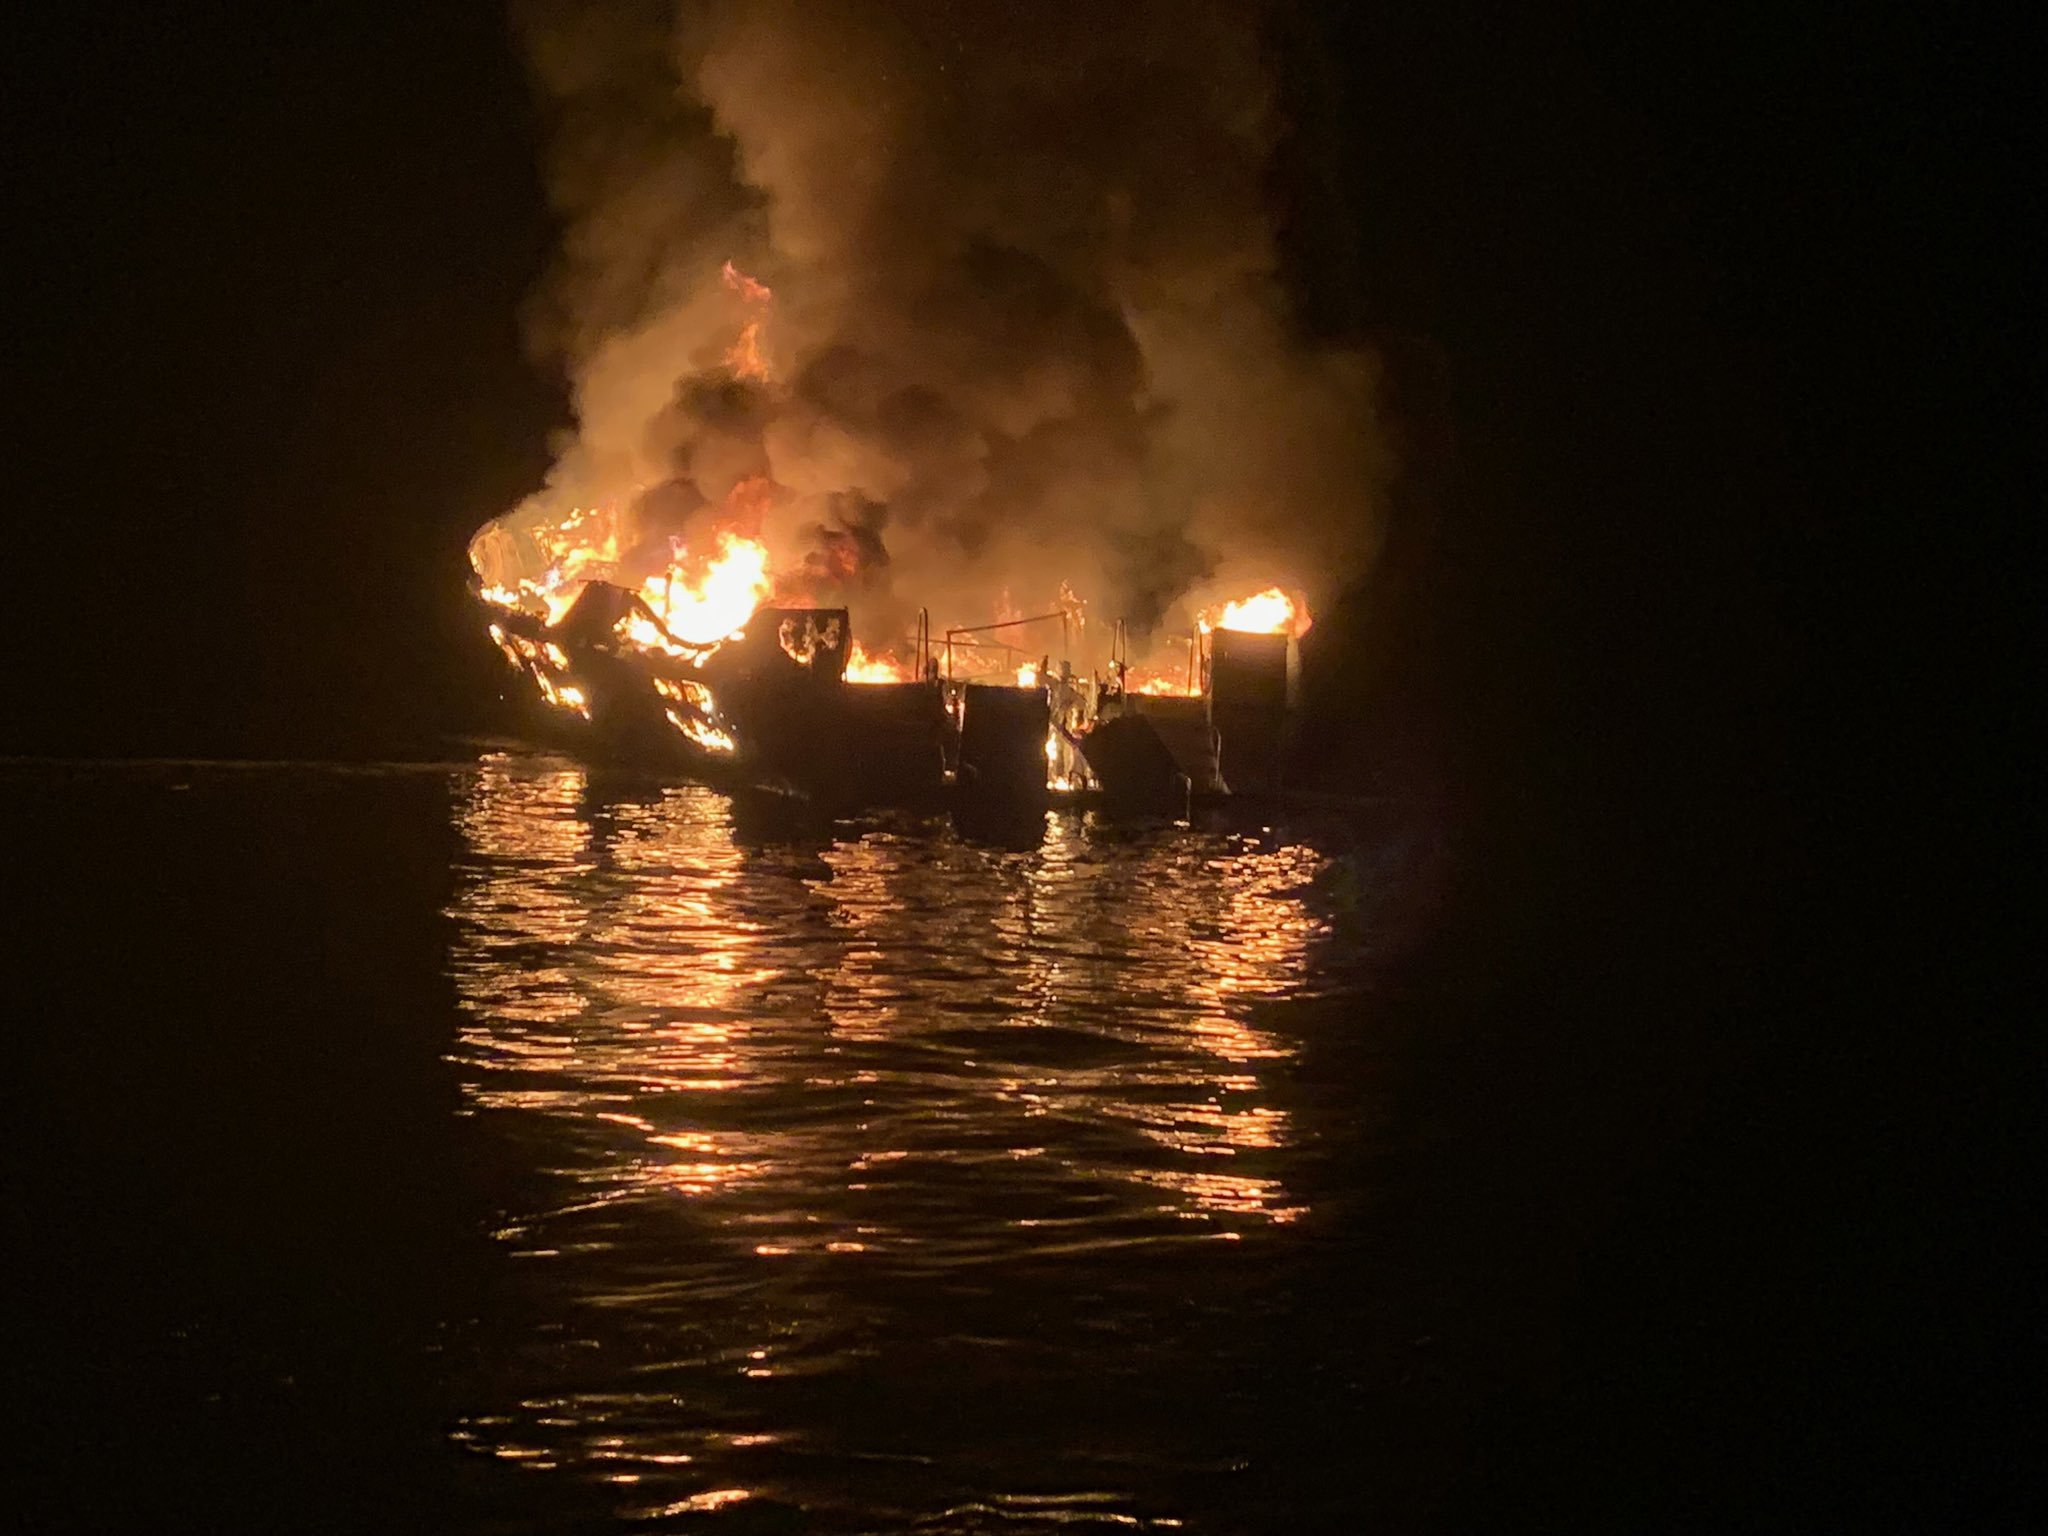 California dive boat captain indicted on multiple counts of manslaughter in connection with fire that left 34 dead